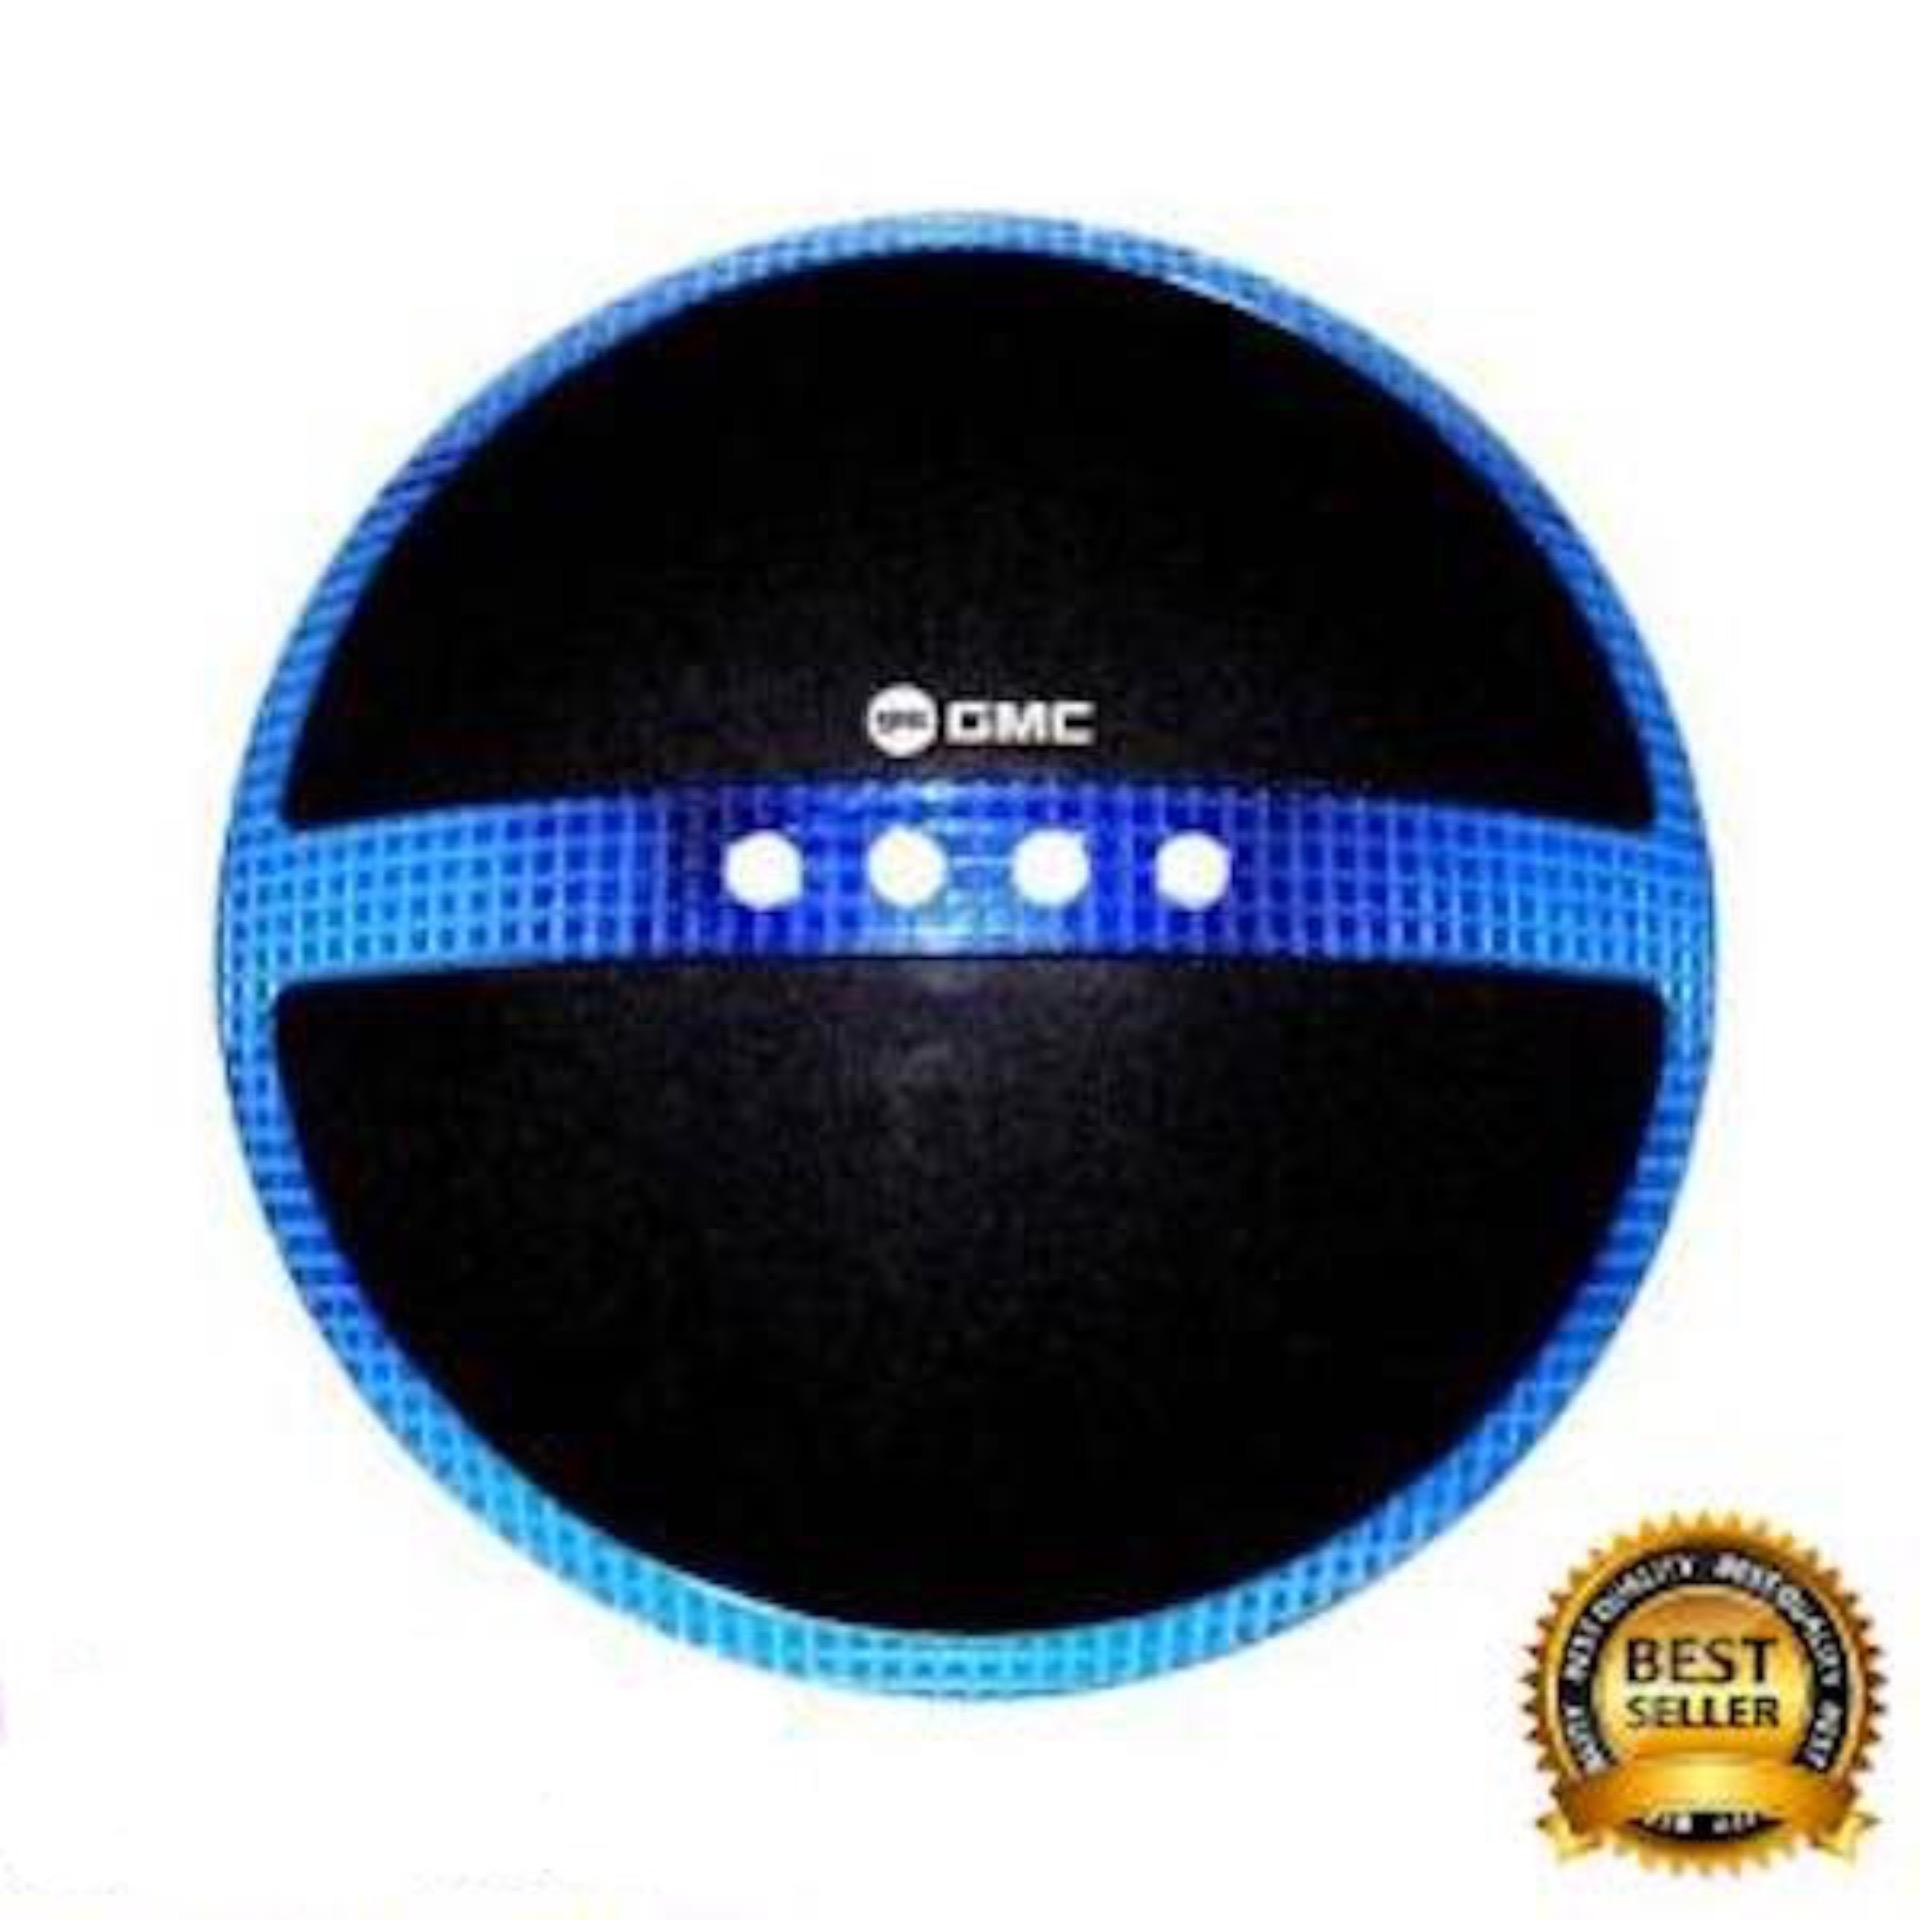 Review Toko Gmc Speaker Multimedia 898B Online